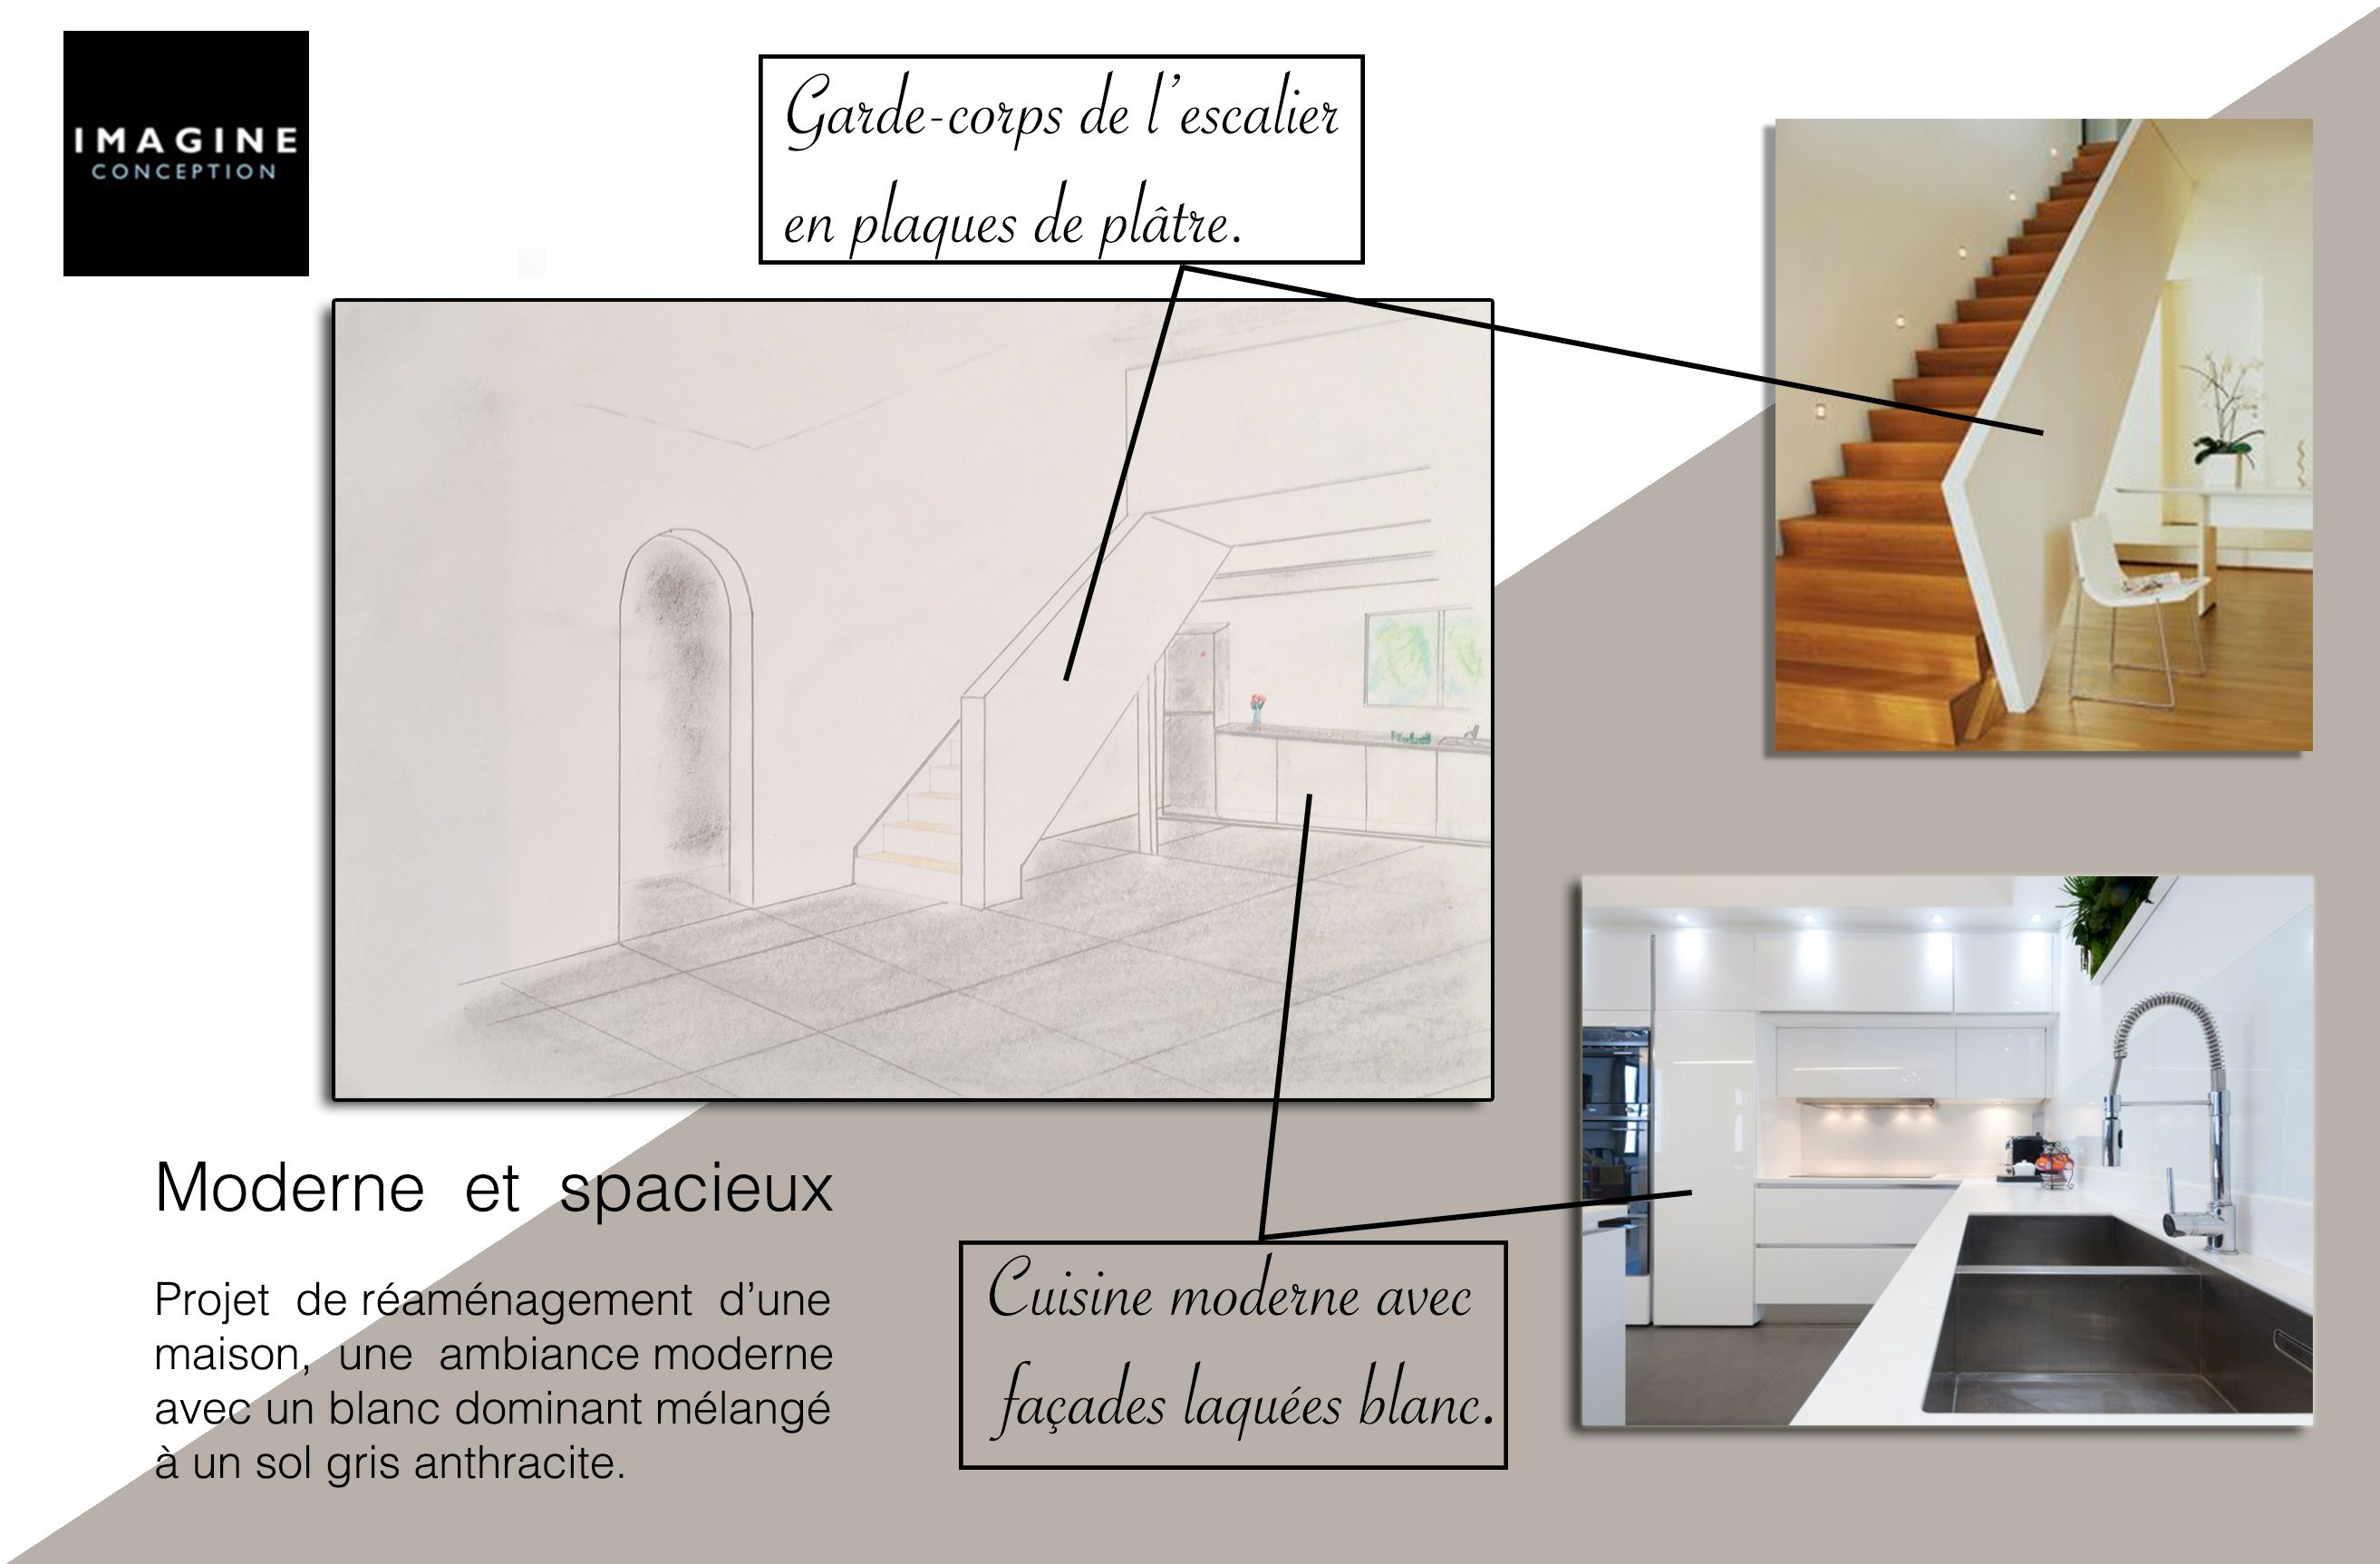 Planche Tendance Pour Un Projet Darchitecture Dintrieur Mood Board For Interior Design ProjectsMood BoardsProject